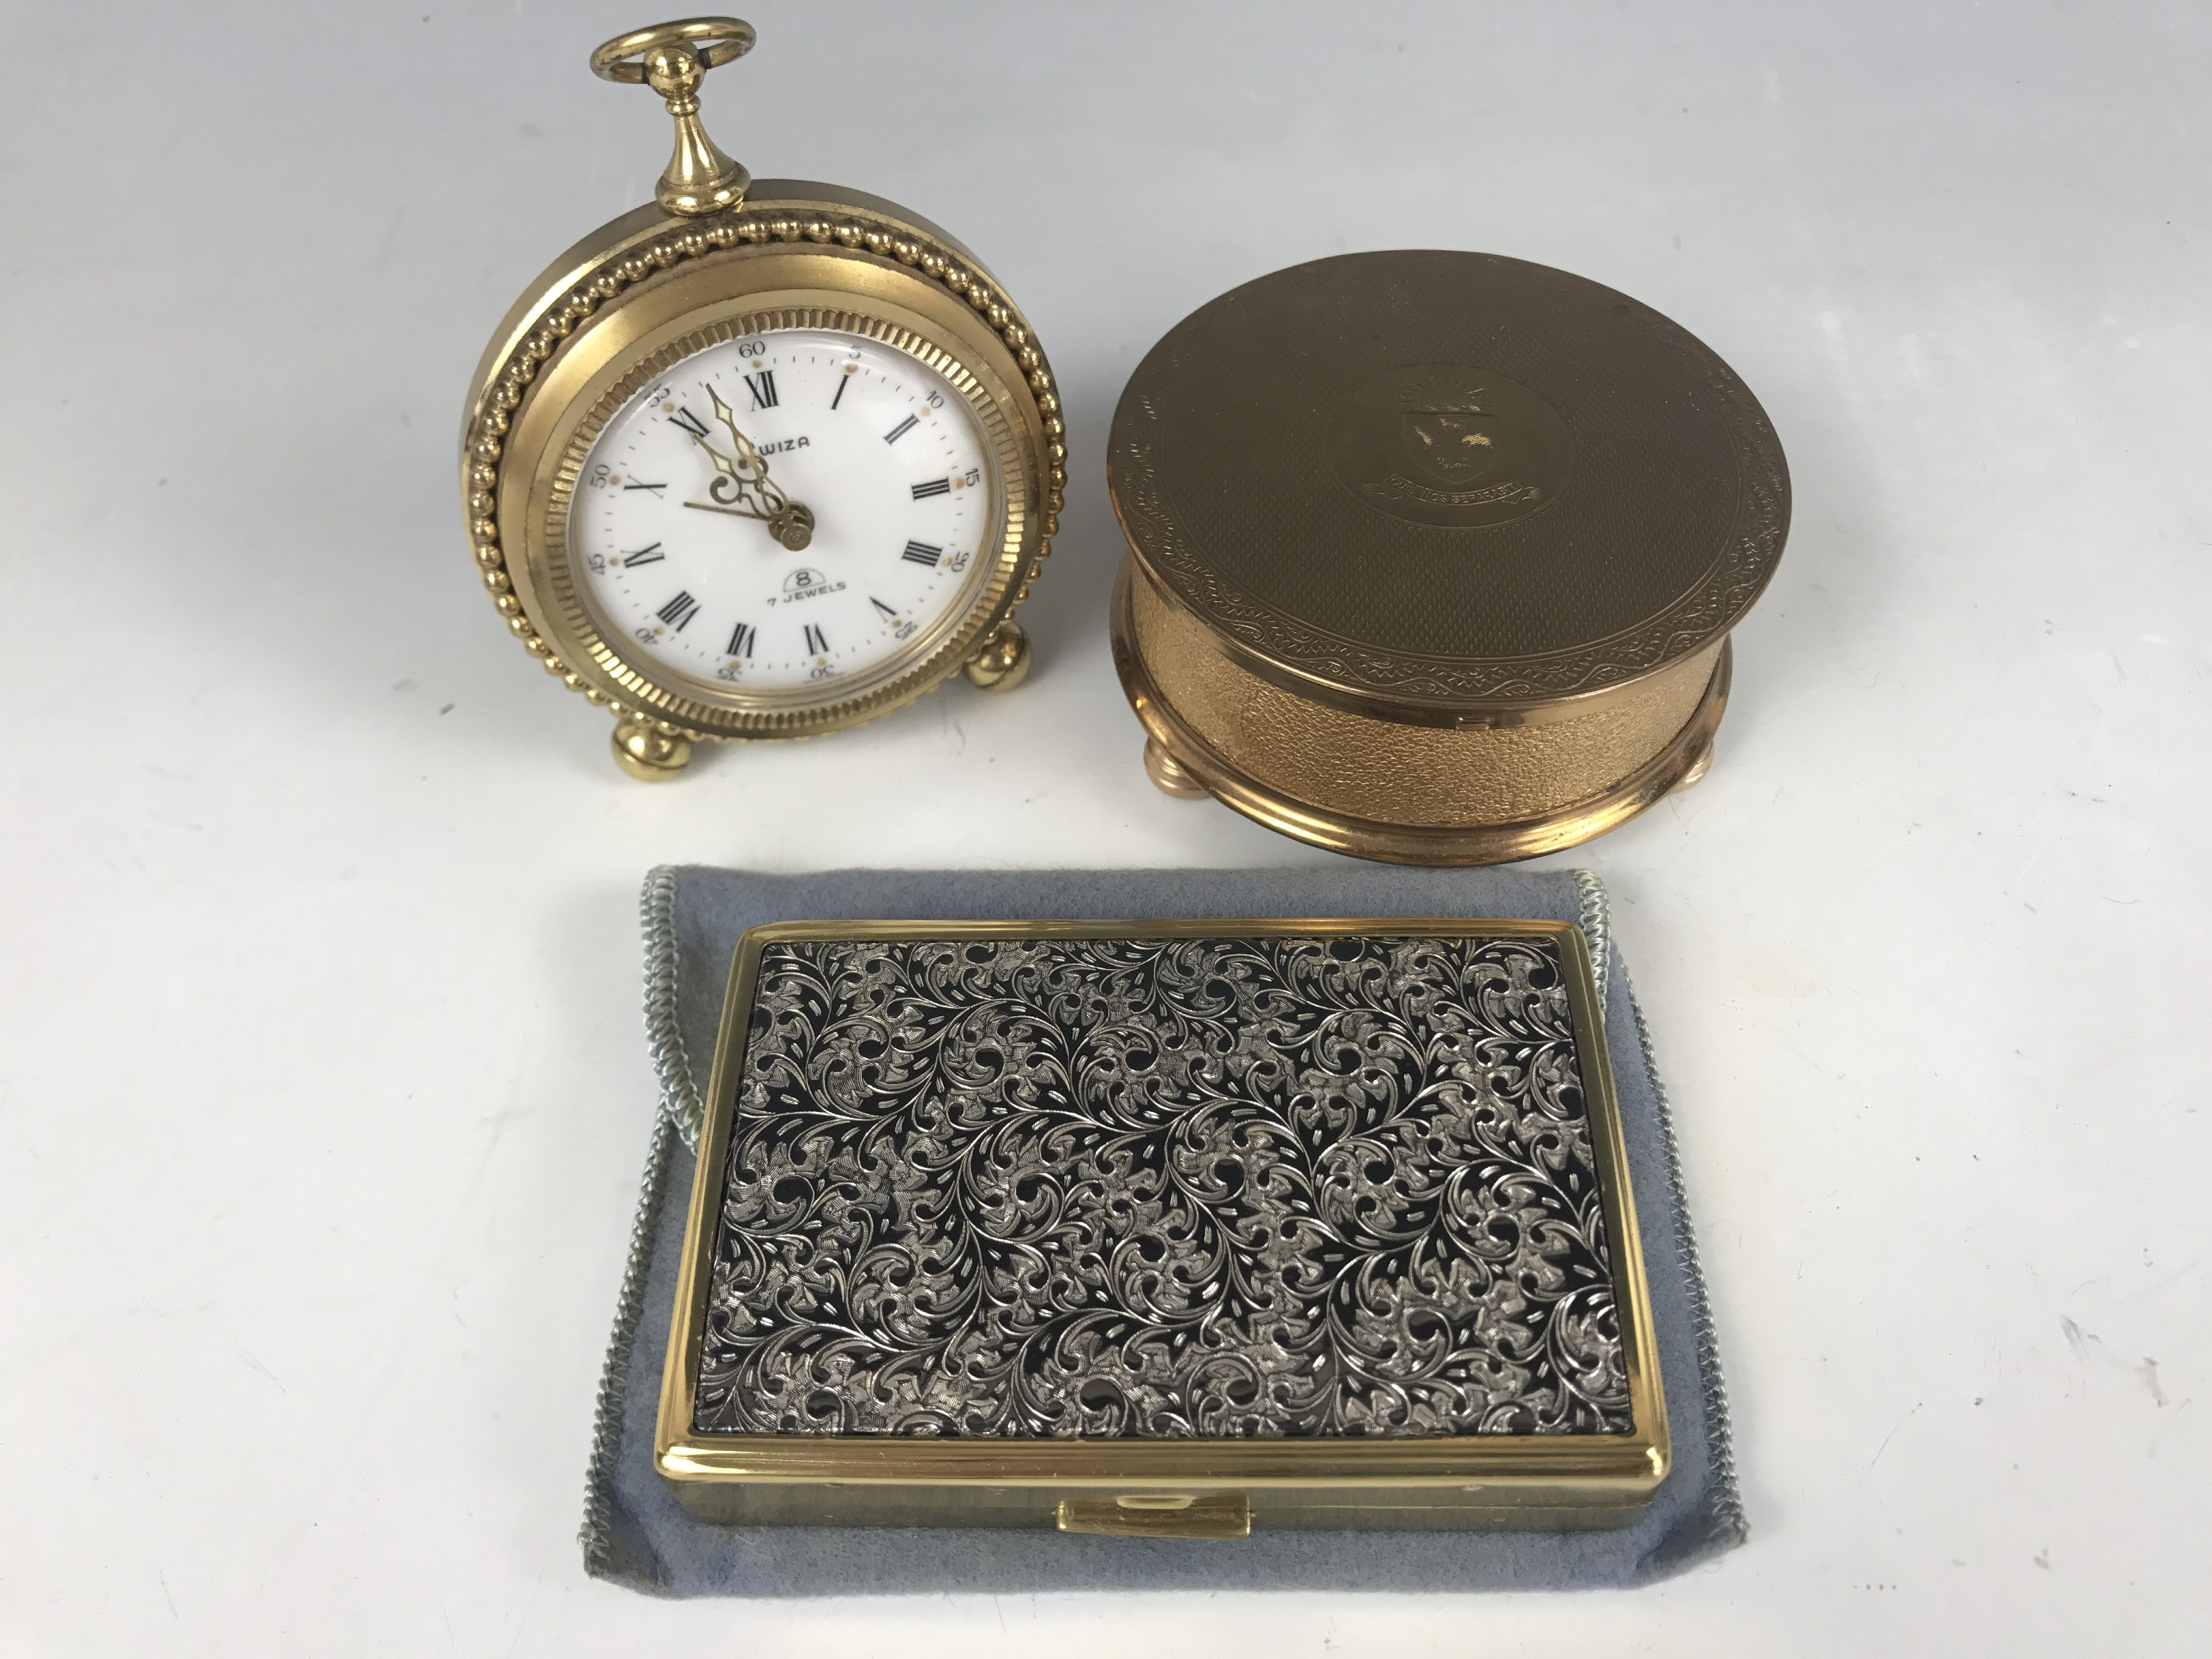 Lot 45 - A novelty Swiza alarm clock together with a Sonata musical compact and one other compact